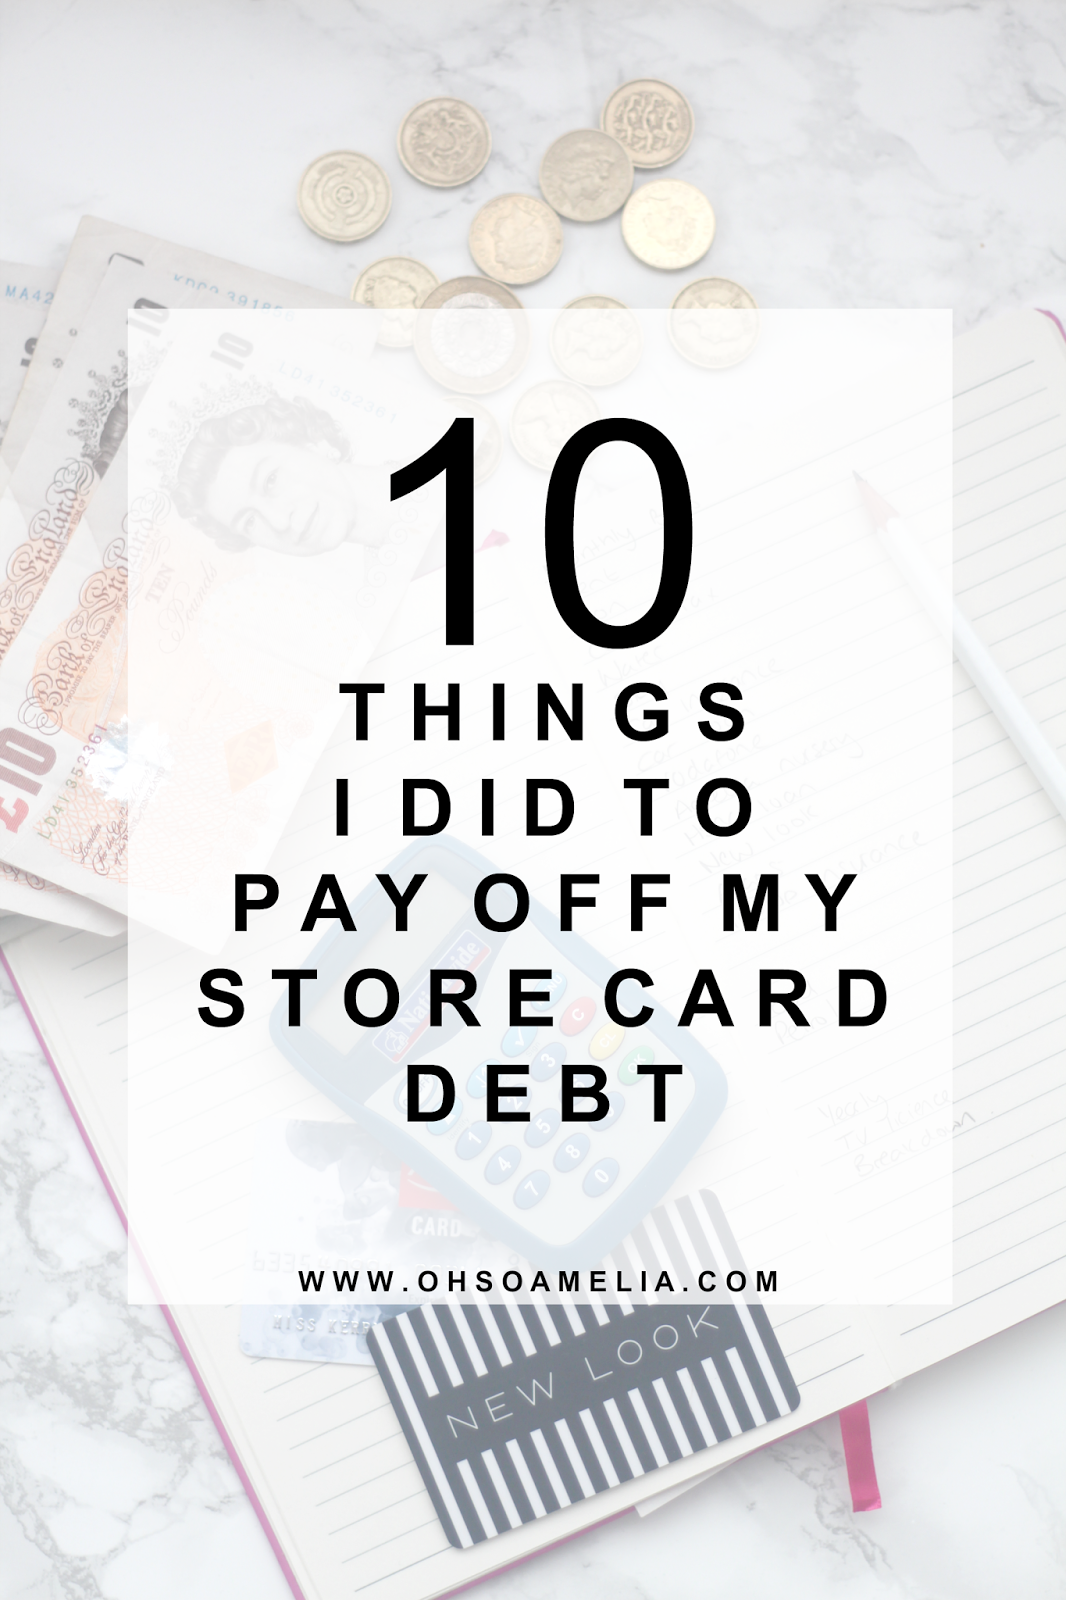 10 Things I Did To Pay Off My Store Card Debt